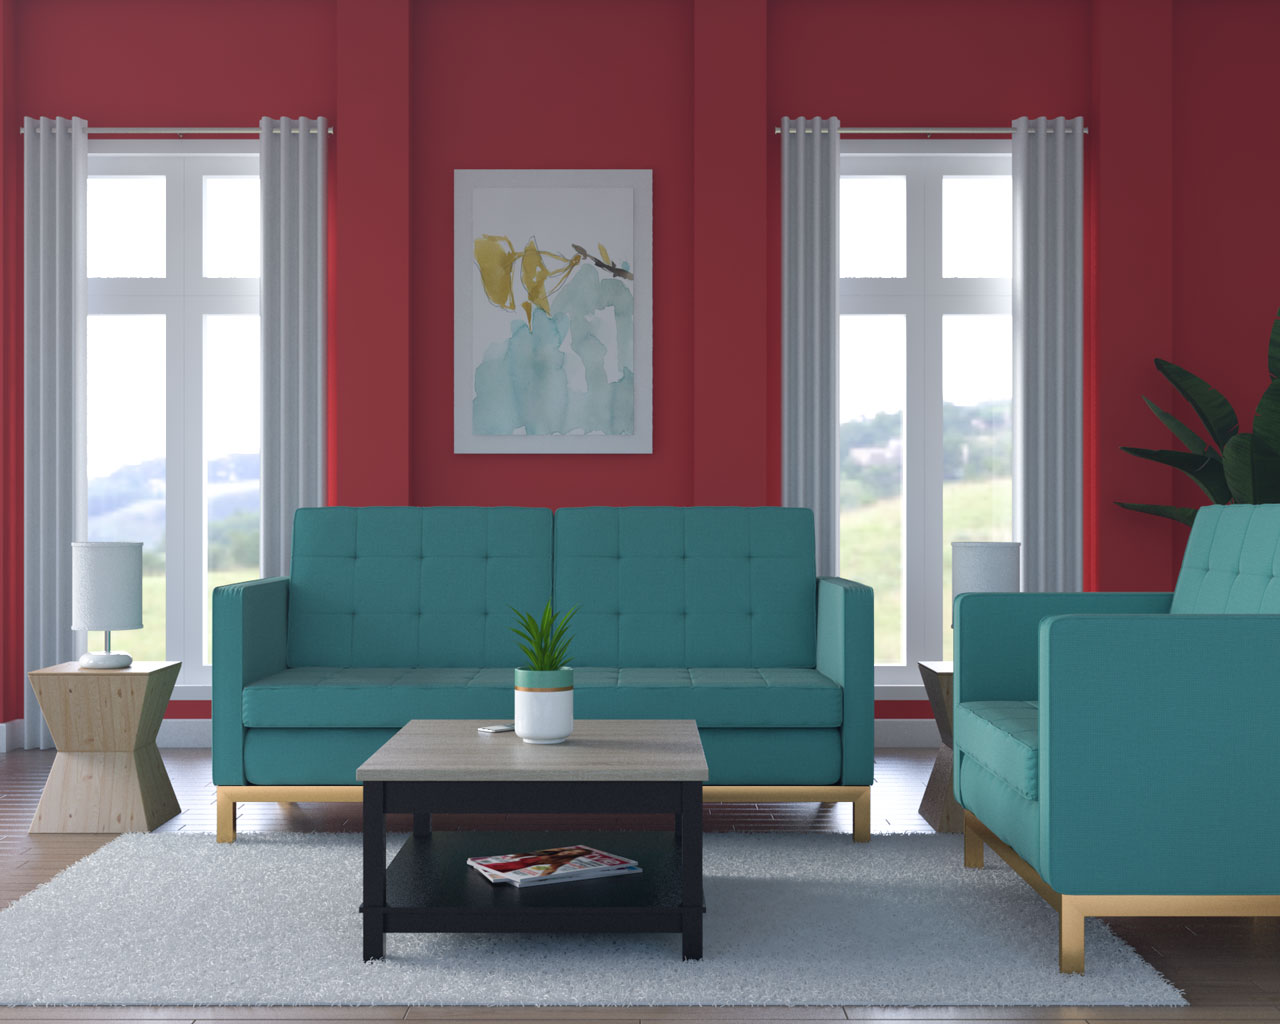 Red walls with teal furniture